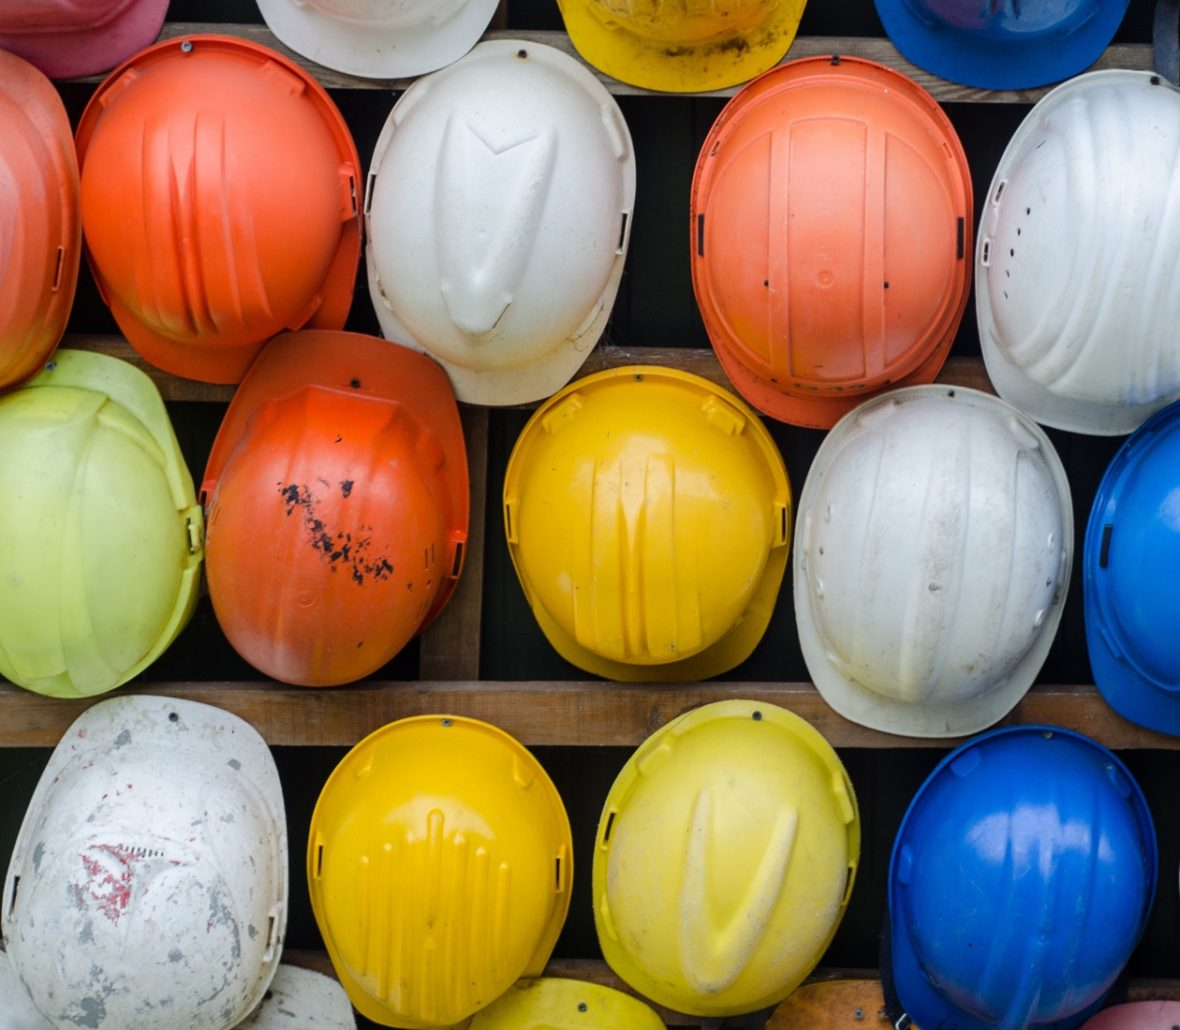 Lots of colorful hardhats photographed from a birds eye view.